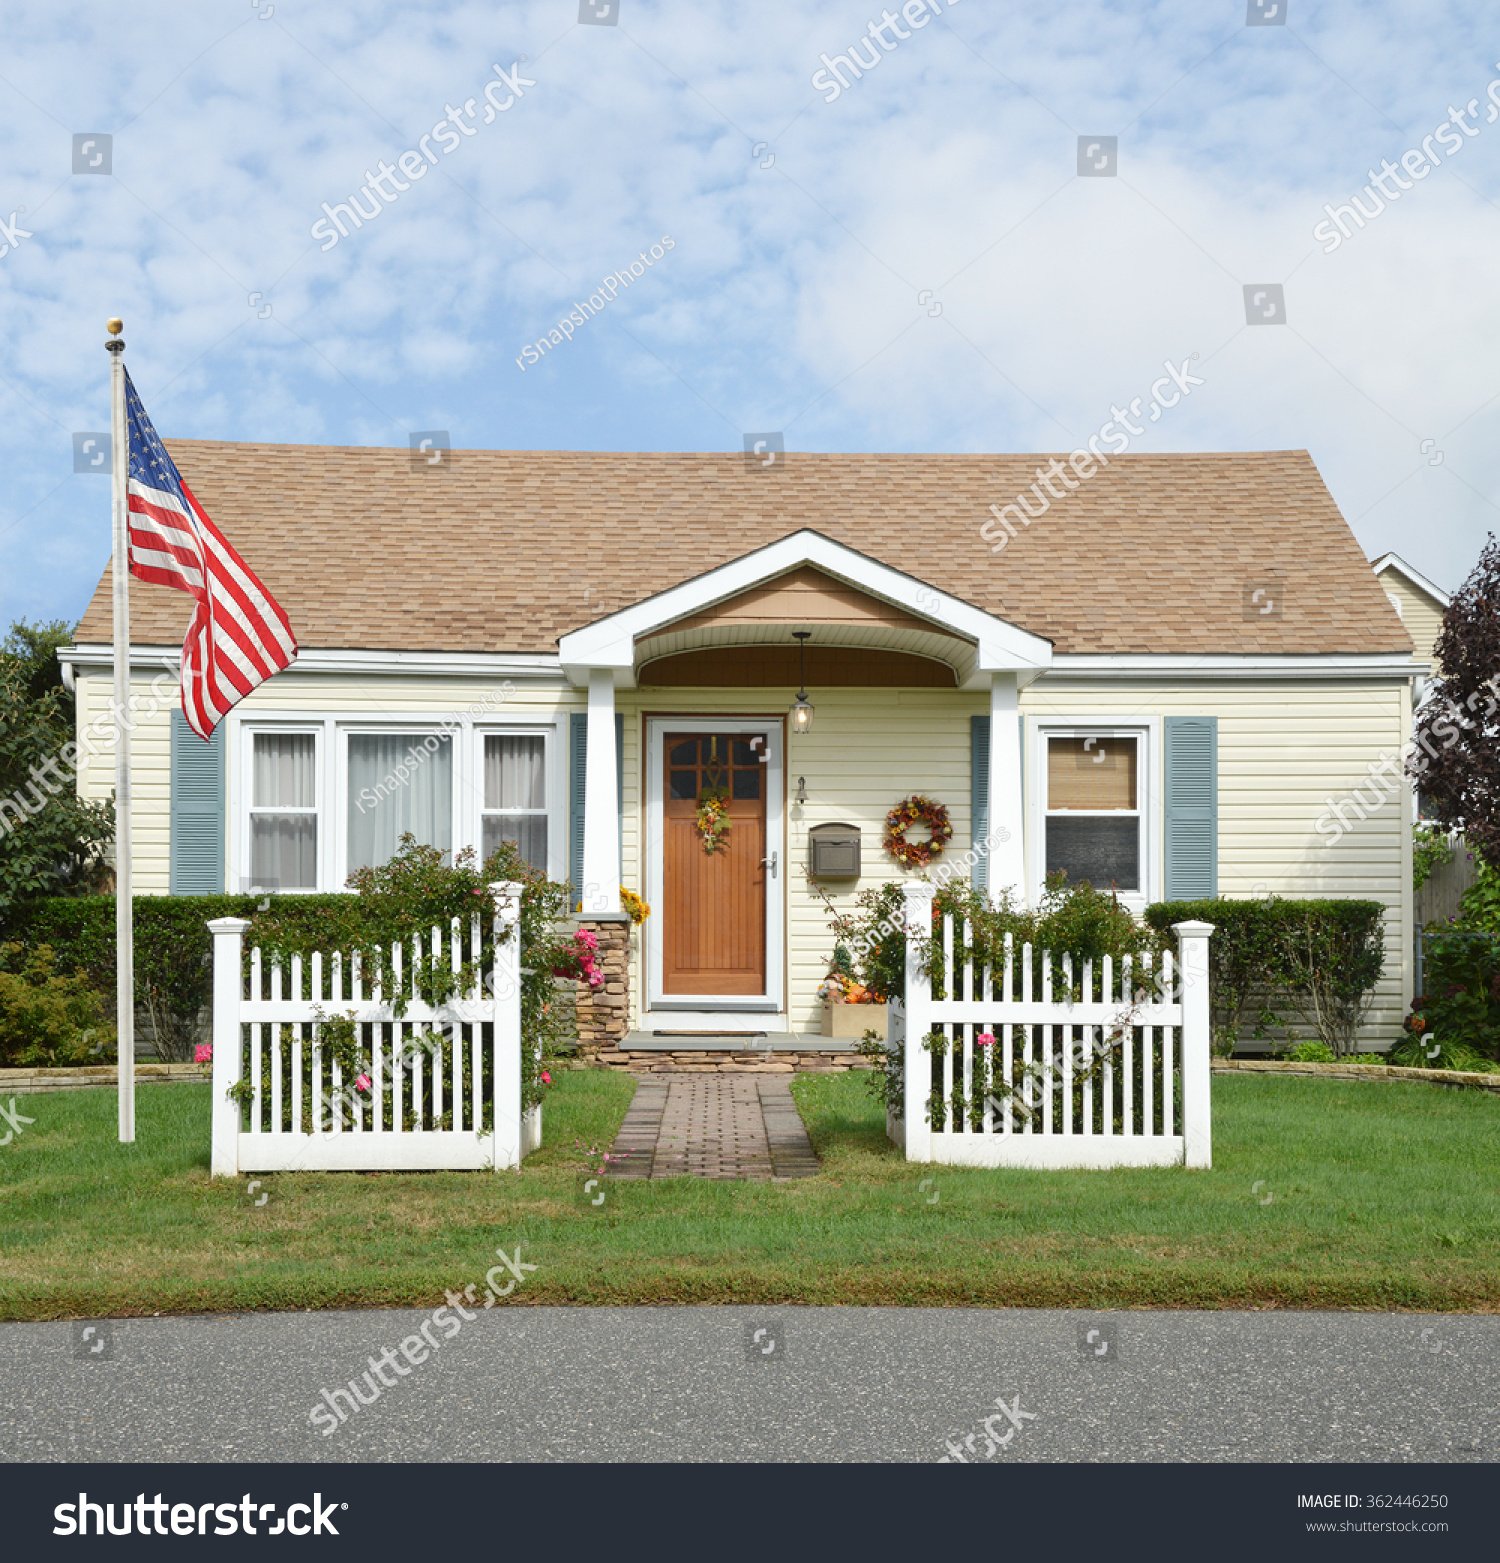 Awesome American Flag Pole Beautiful Suburban Stock Photo 362446250 Home Interior And Landscaping Ferensignezvosmurscom